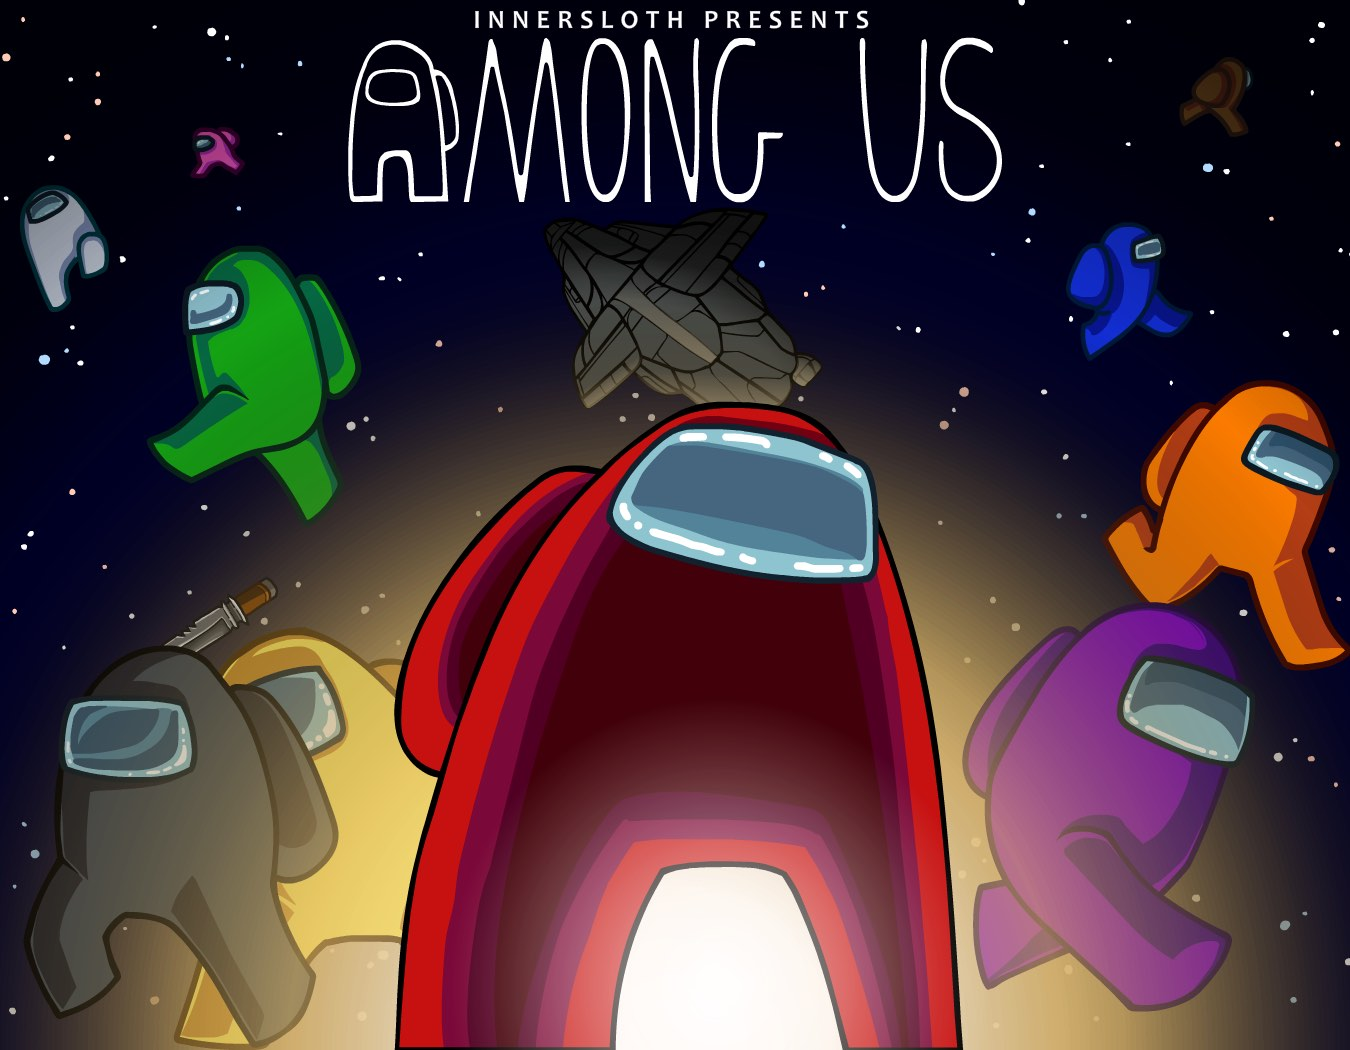 Among Us artwork. A group of bean-shaped astronaut characters standing in front of a space background.